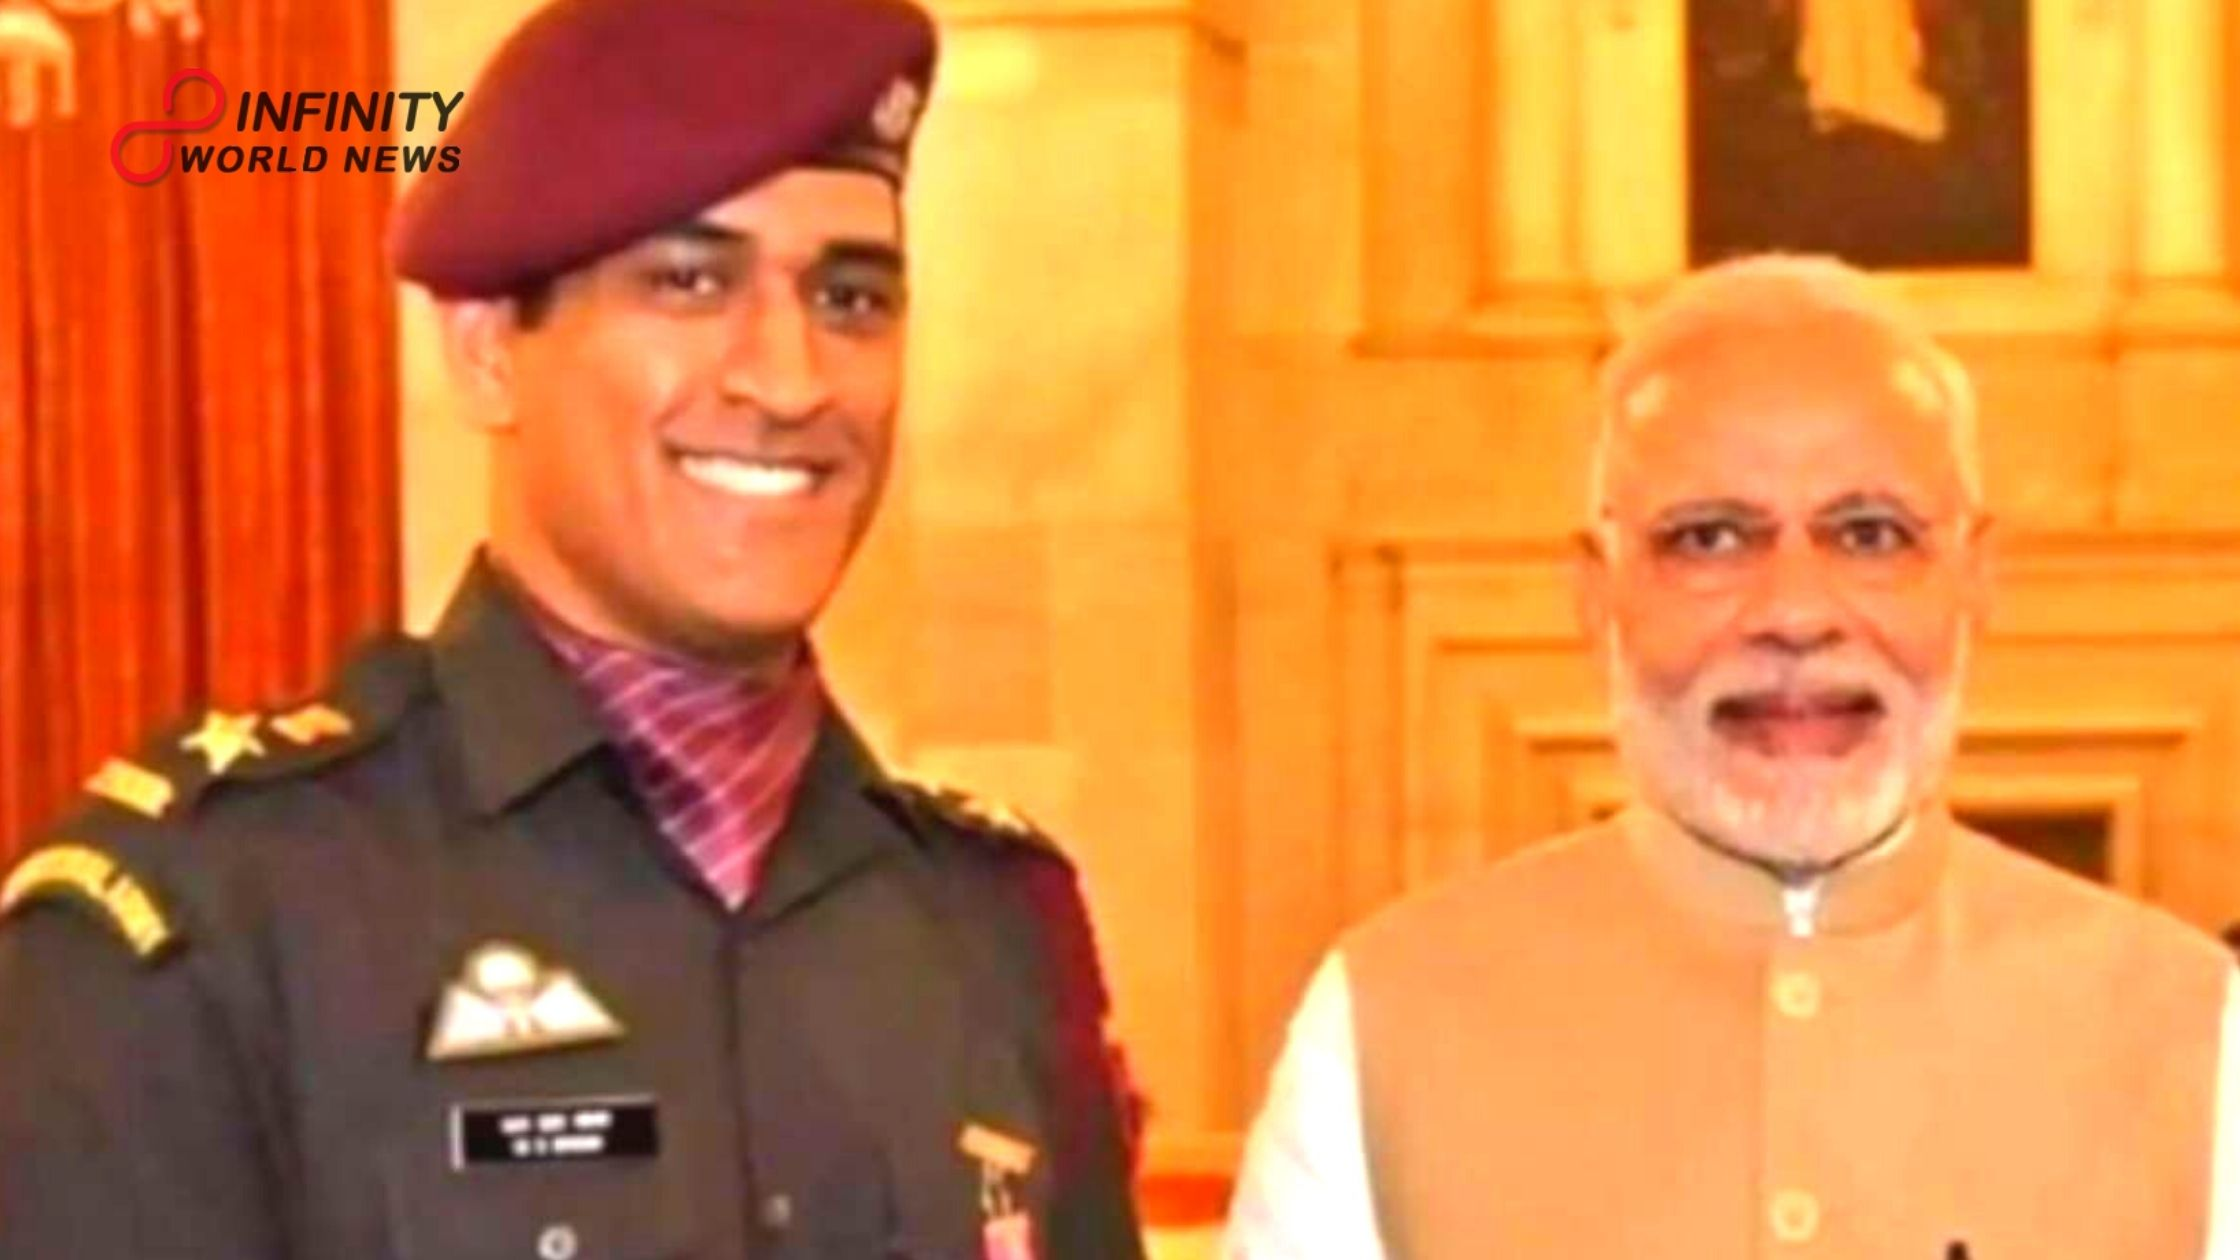 PM Narendra Modi Says MS Dhoni _Outline Of Spirit Of New India_ In Letter. He Replies